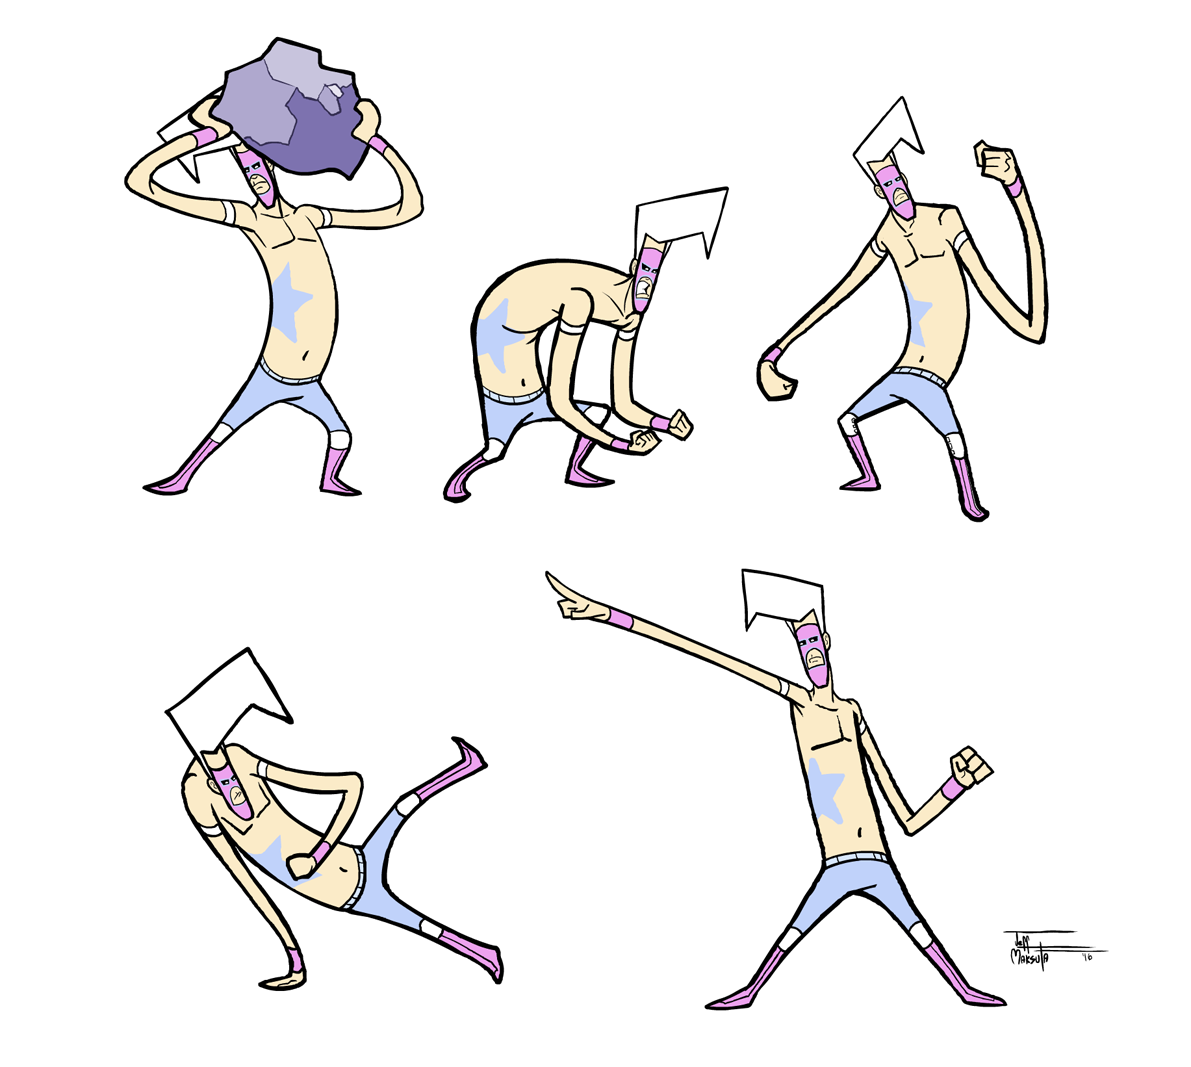 Super Character Design Poses Pdf : Character design poses by superjeffoman on newgrounds